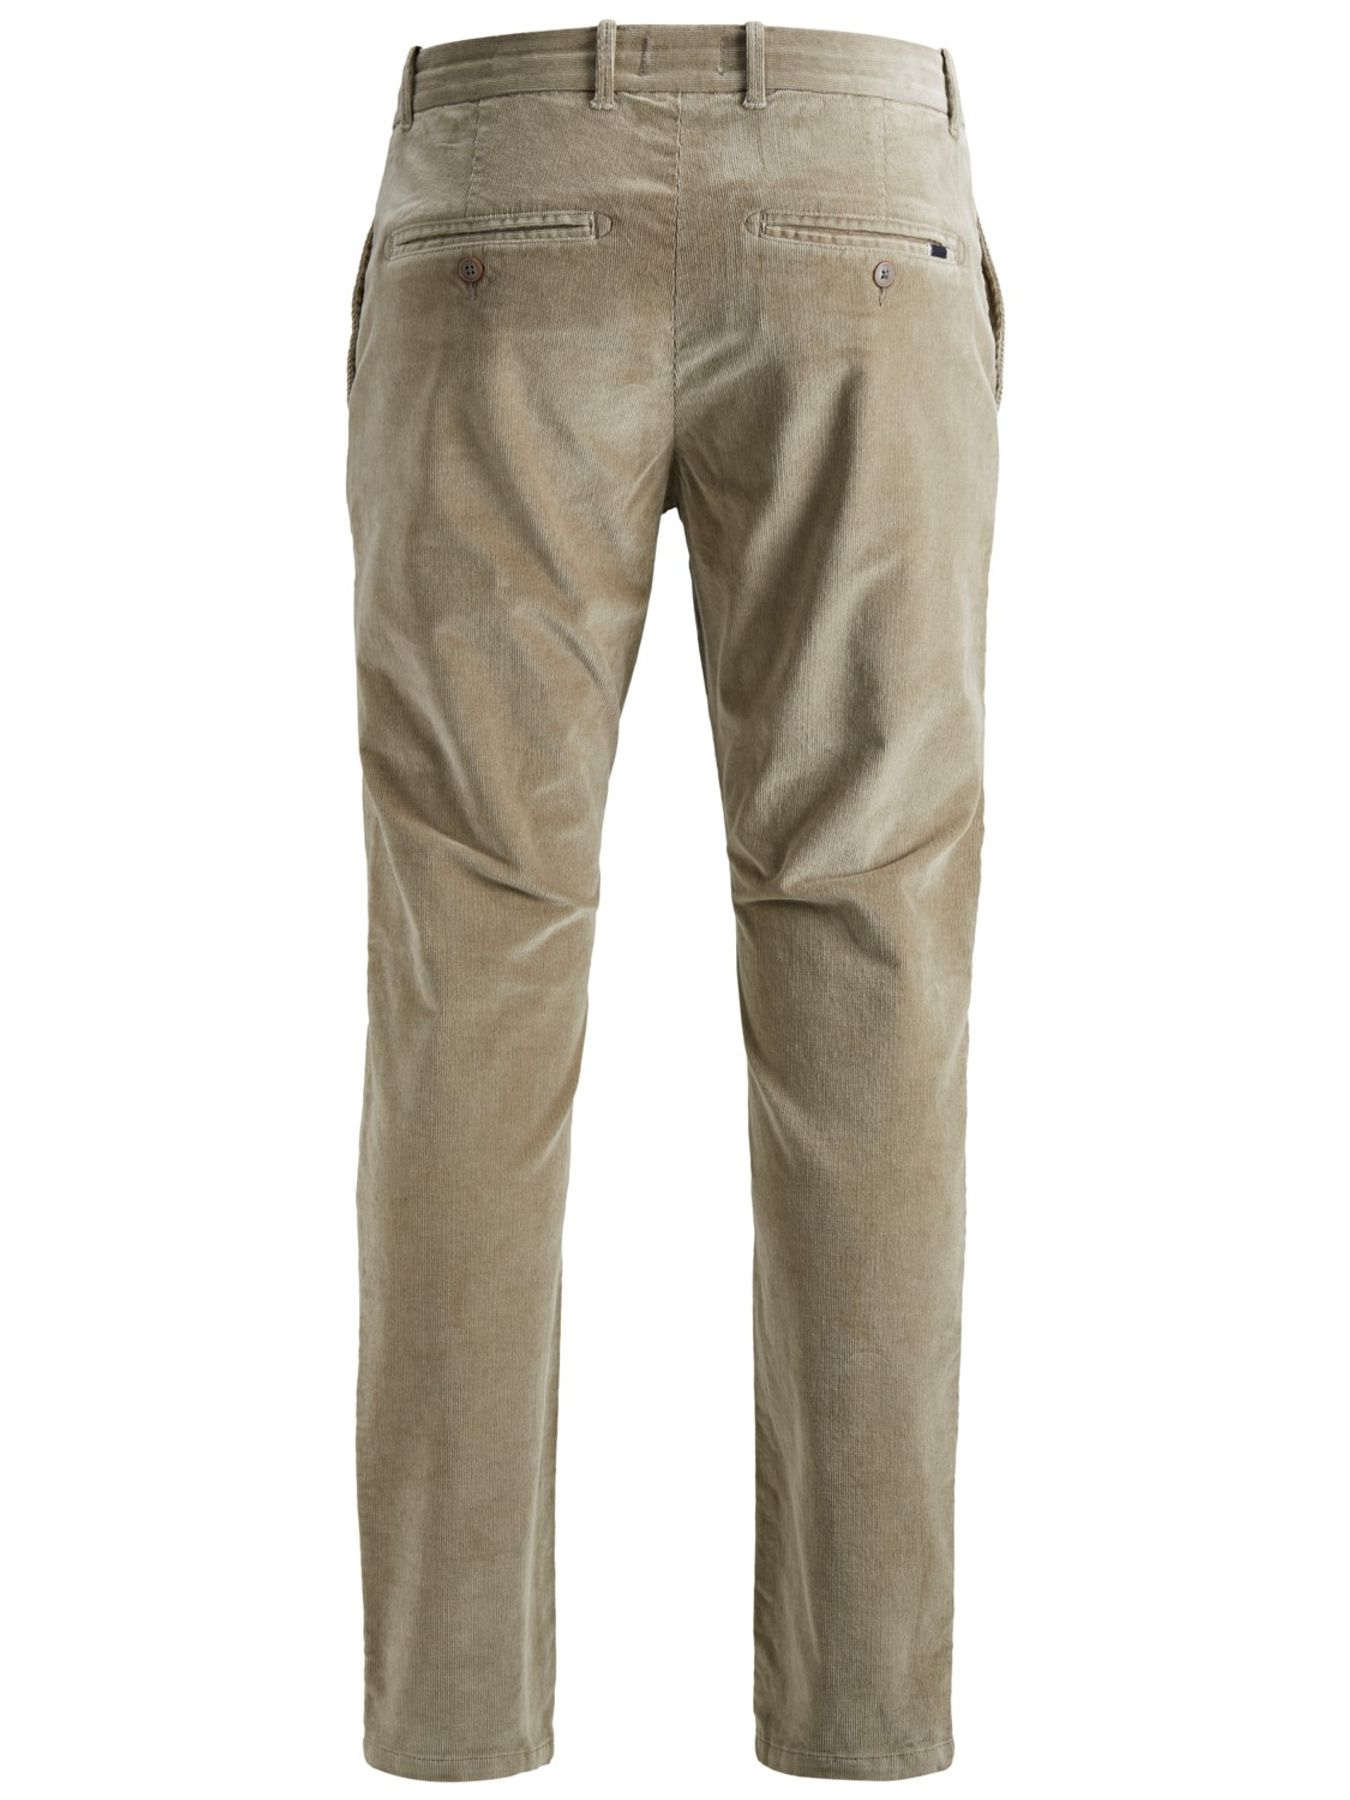 Jack & Jones - Herren Cordhose in beige (Art. 12142834) – Bild 2